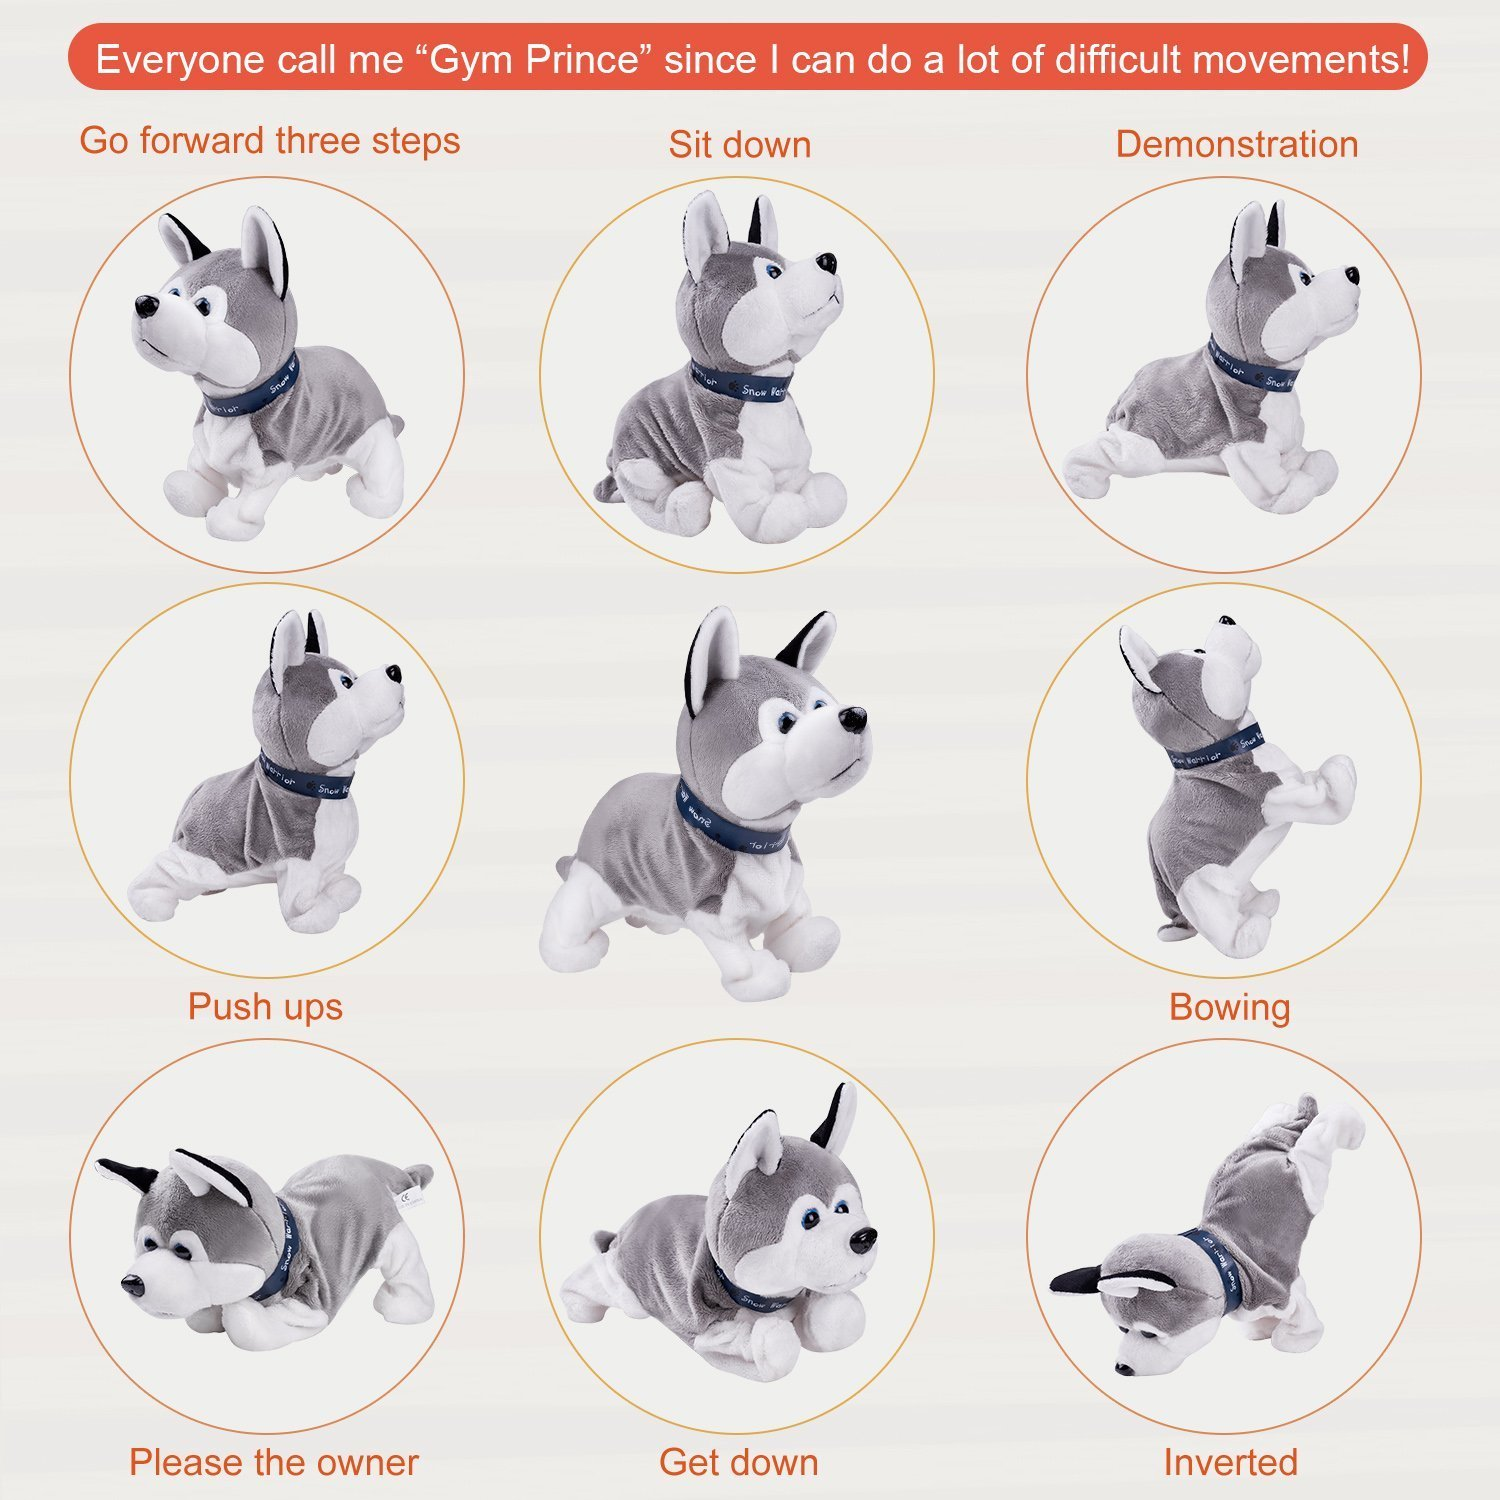 Interactive Puppy Plush Animated Pet Electronic Dog Cute Robot Dog Baby Toys Touch Control Plush Husky Stuffed Animal Dog Toy Toddler kids Girl Toys Tumbling, Clapping hands, Bowing Length 12'' by Marsjoy (Image #2)